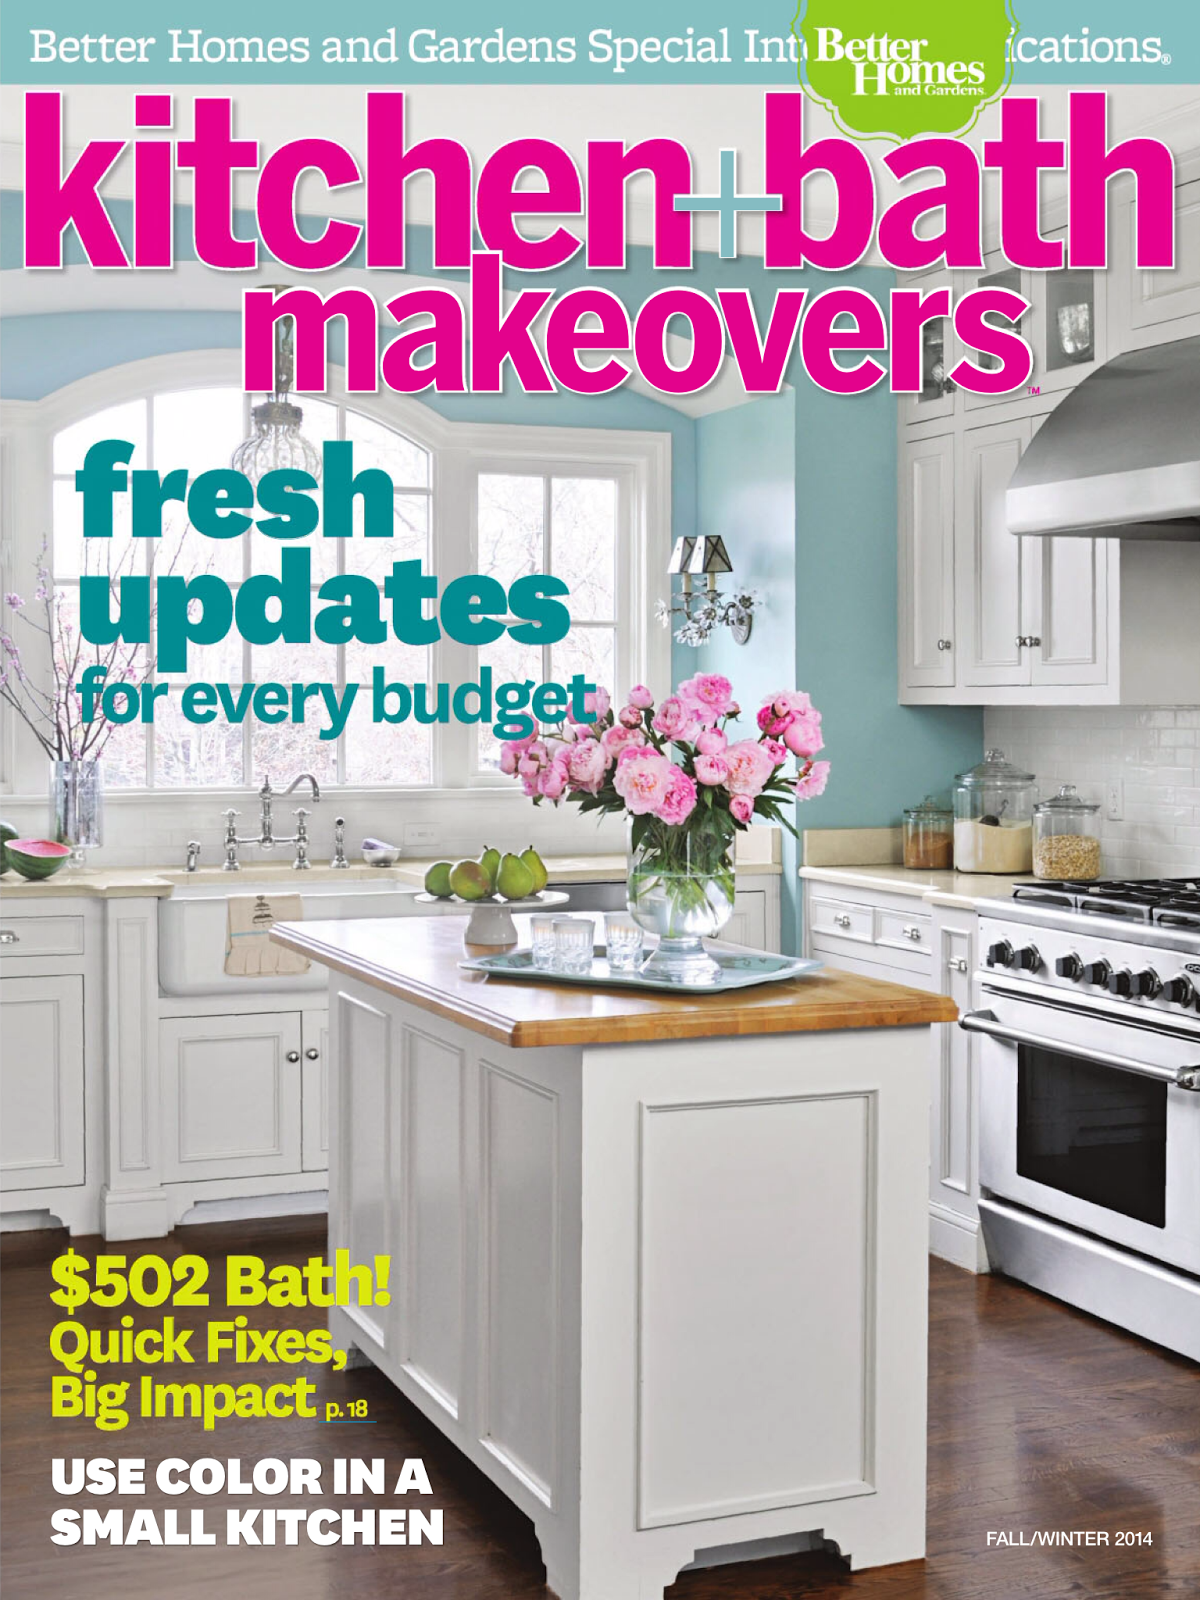 Better homes and gardens kitchen - Better Homes And Garden Kitchen And Bath Makeovers Fall Winter 2014